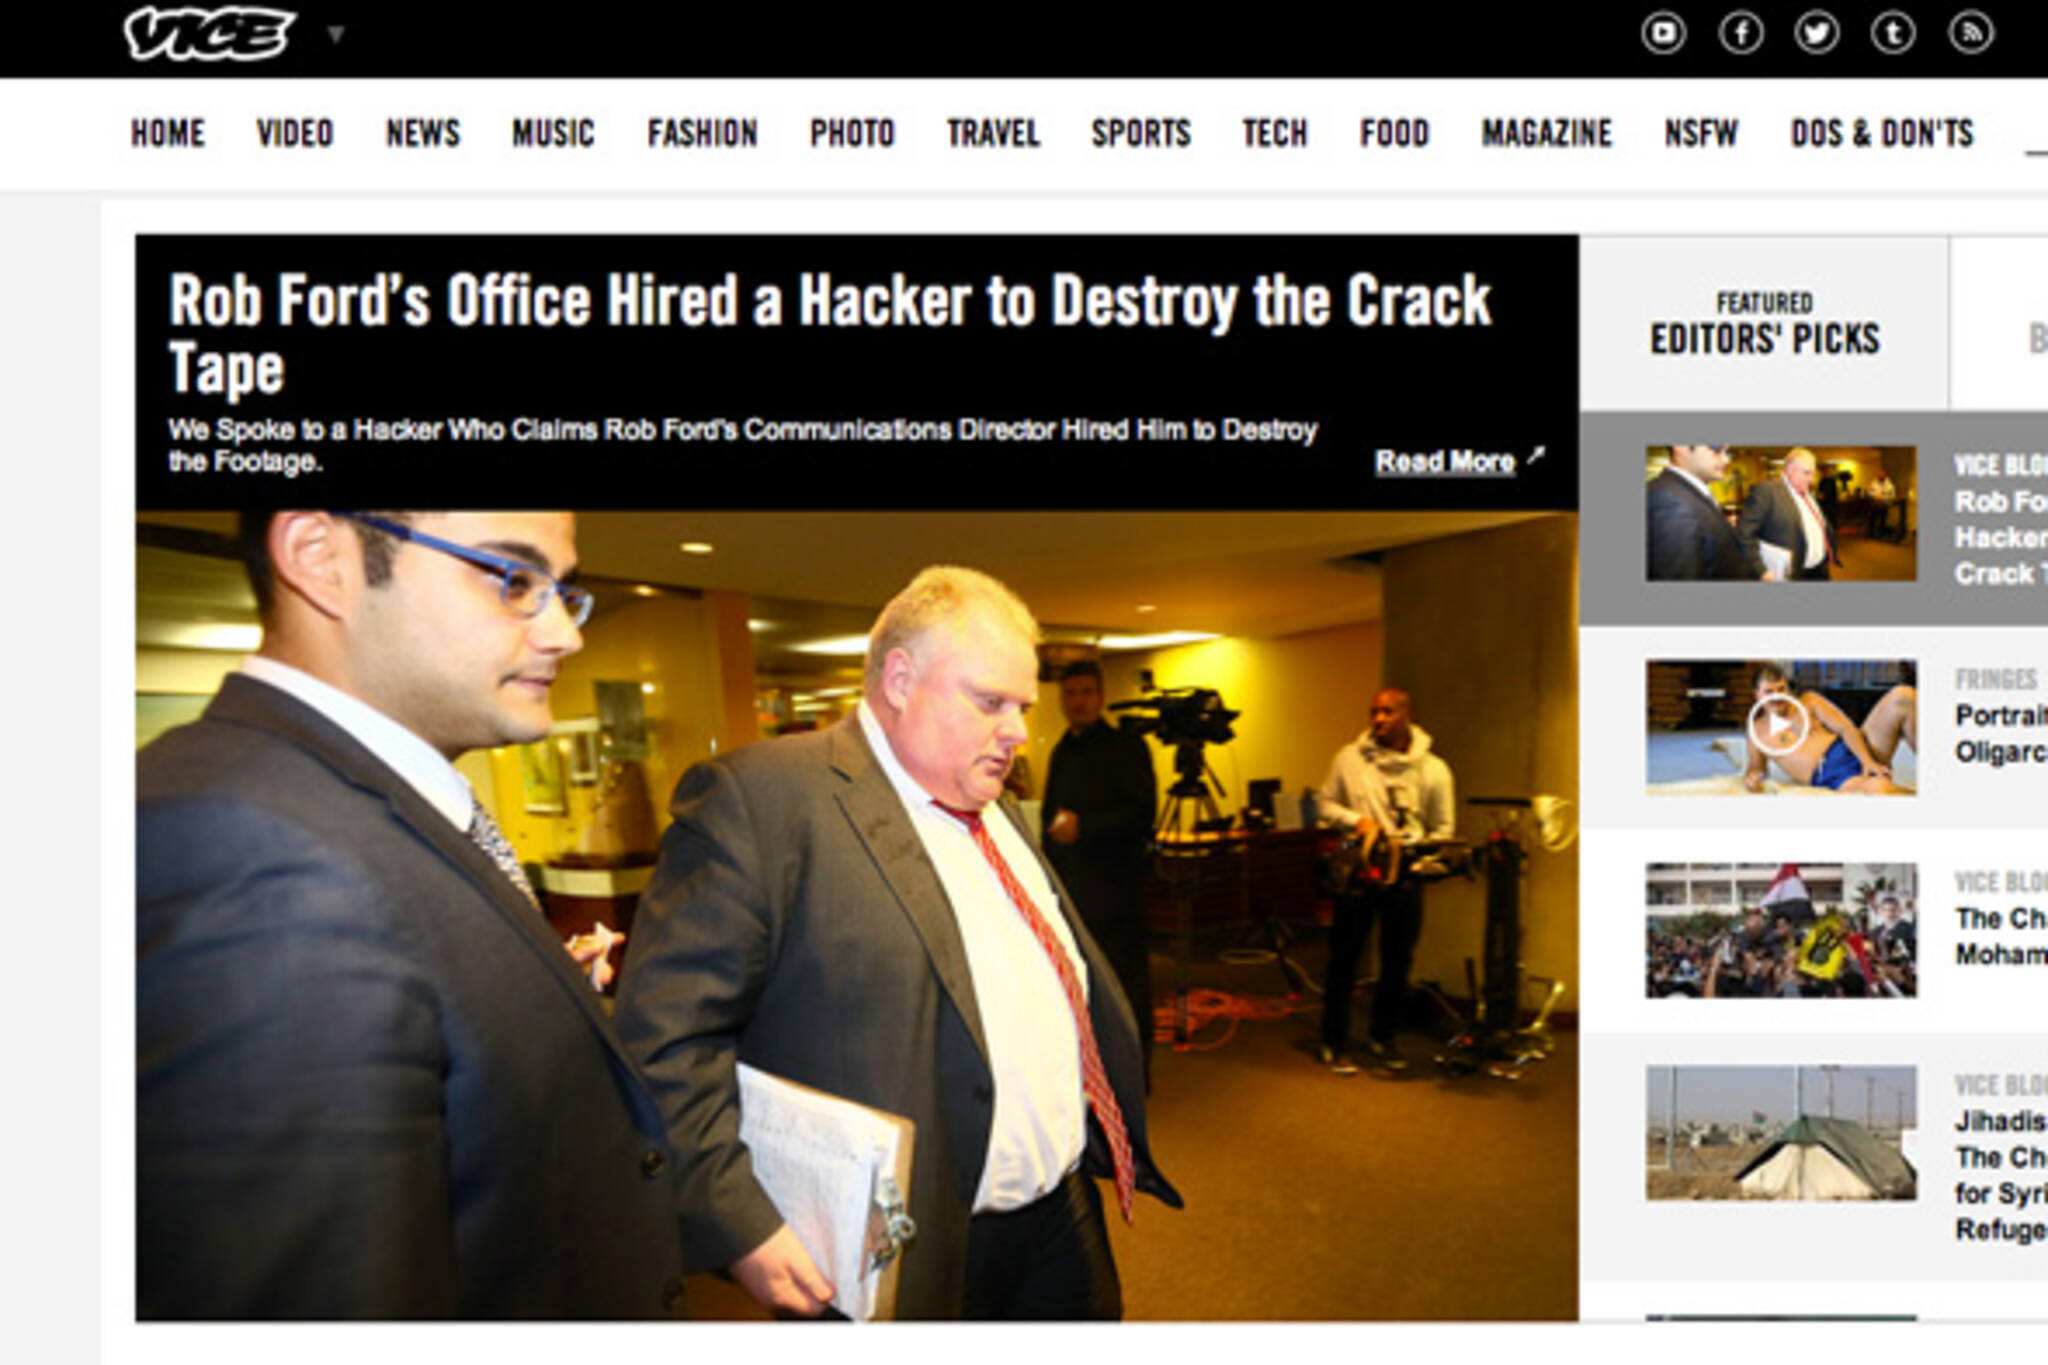 Vice Rob Ford Hacker